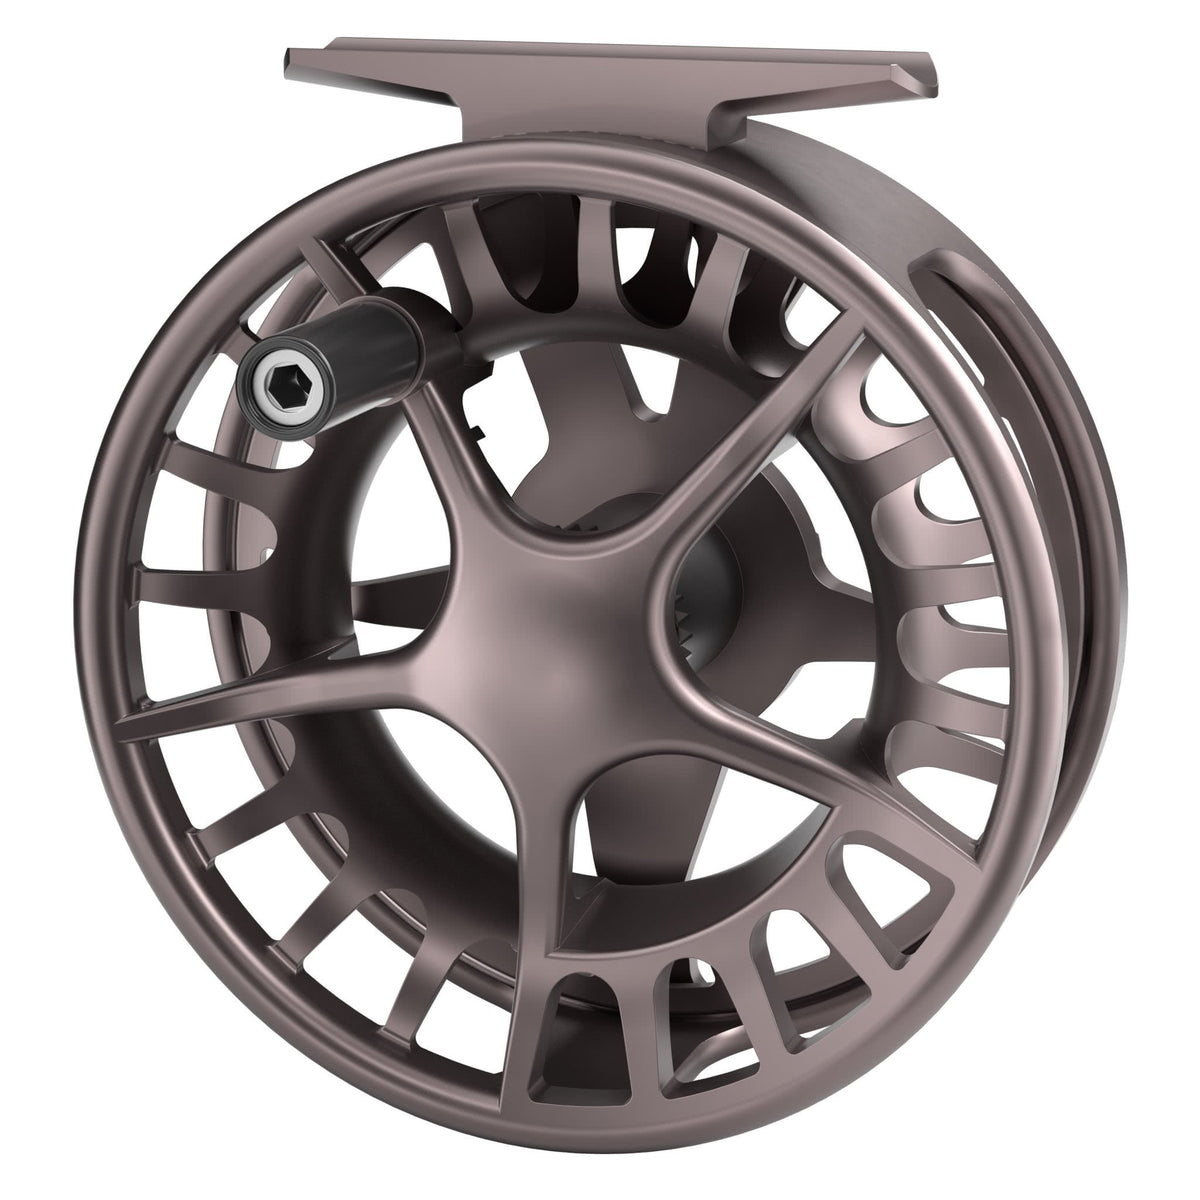 waterworks lamson remix fly reel smoke front